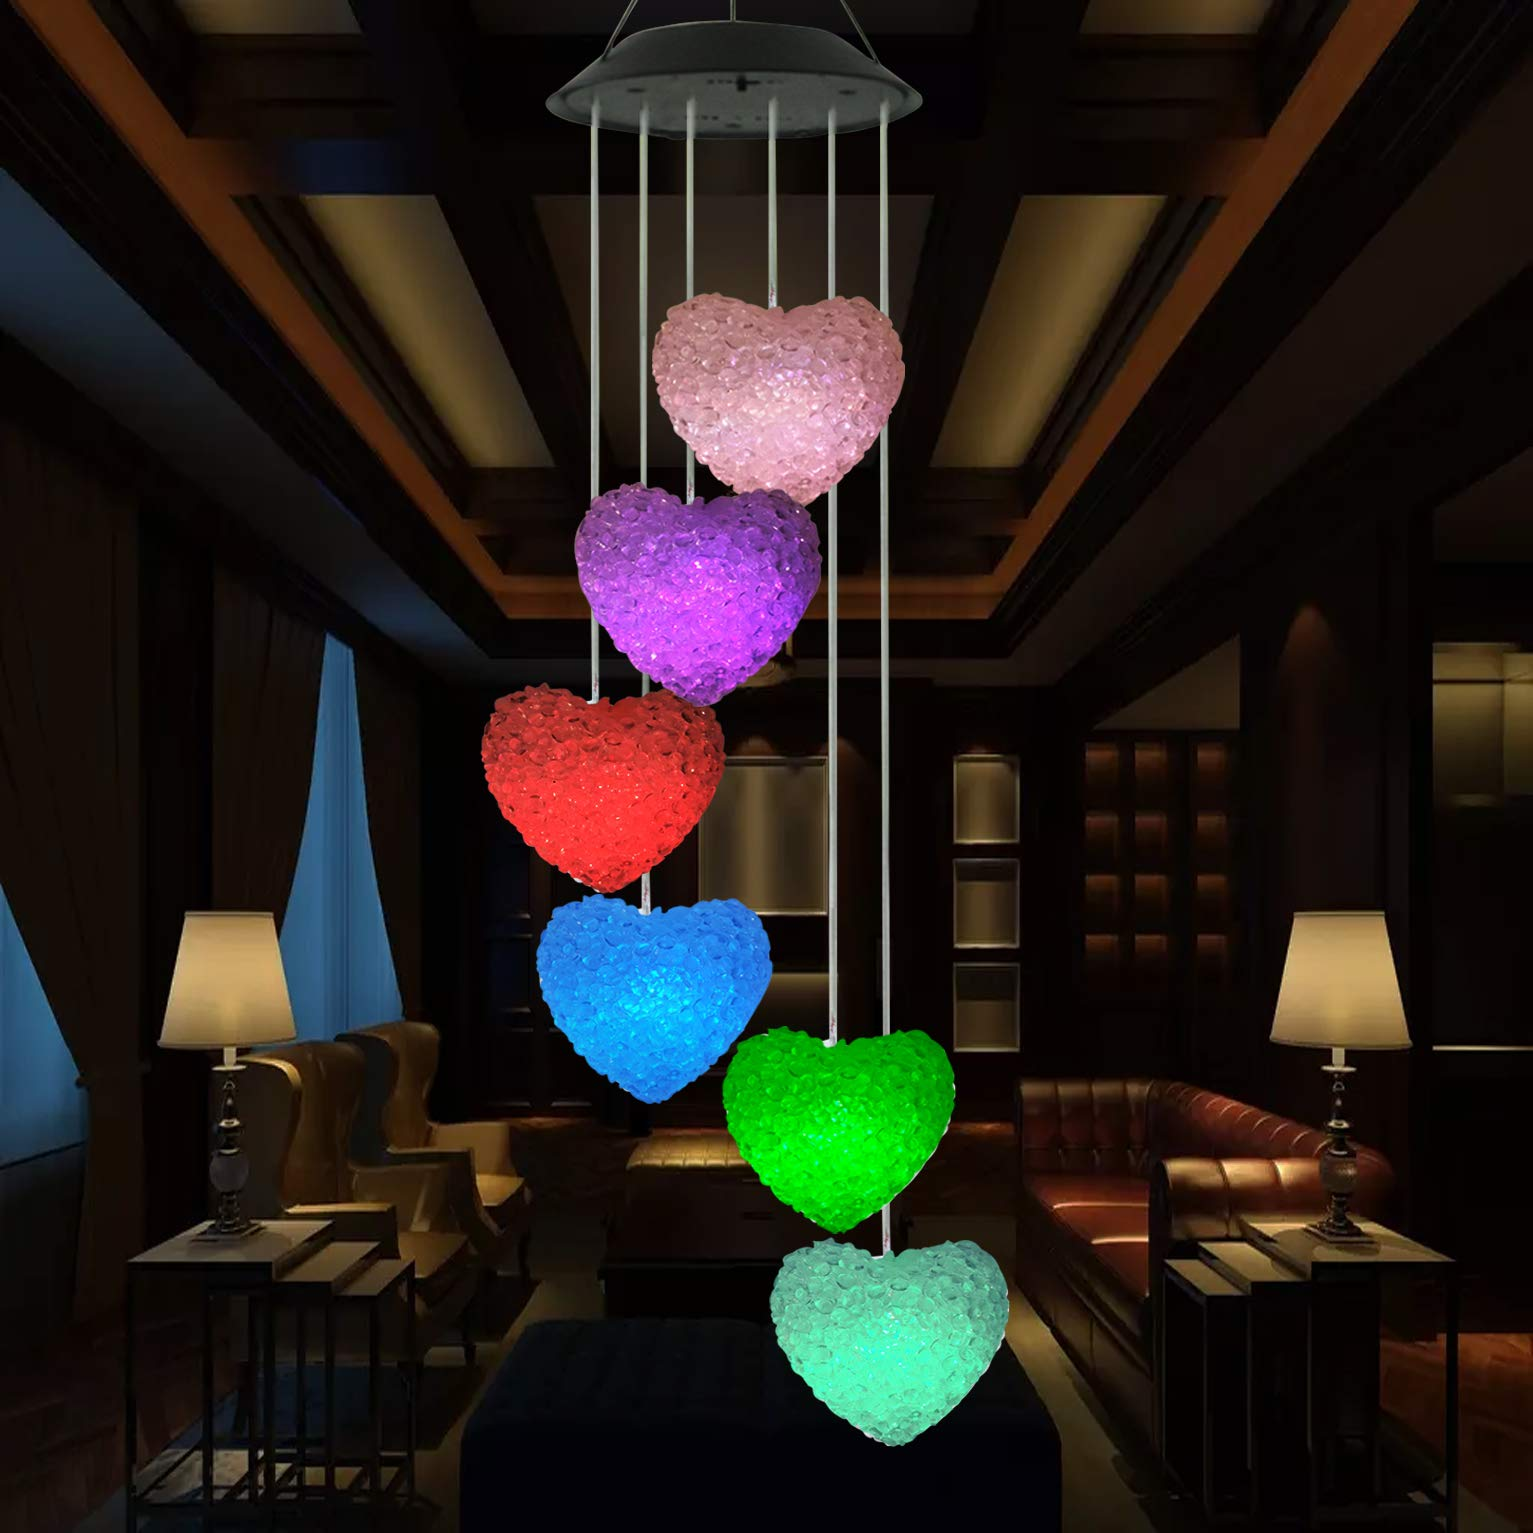 Youyuan LED Solar Wind Chime - Outdoor Waterproof Solar Powered LED Changing Light Color Mobile Six Heart Shaped Wind Chimes for Home,Party,Festival Decor,Valentines Gift,Night Garden Decoration by Youyuan